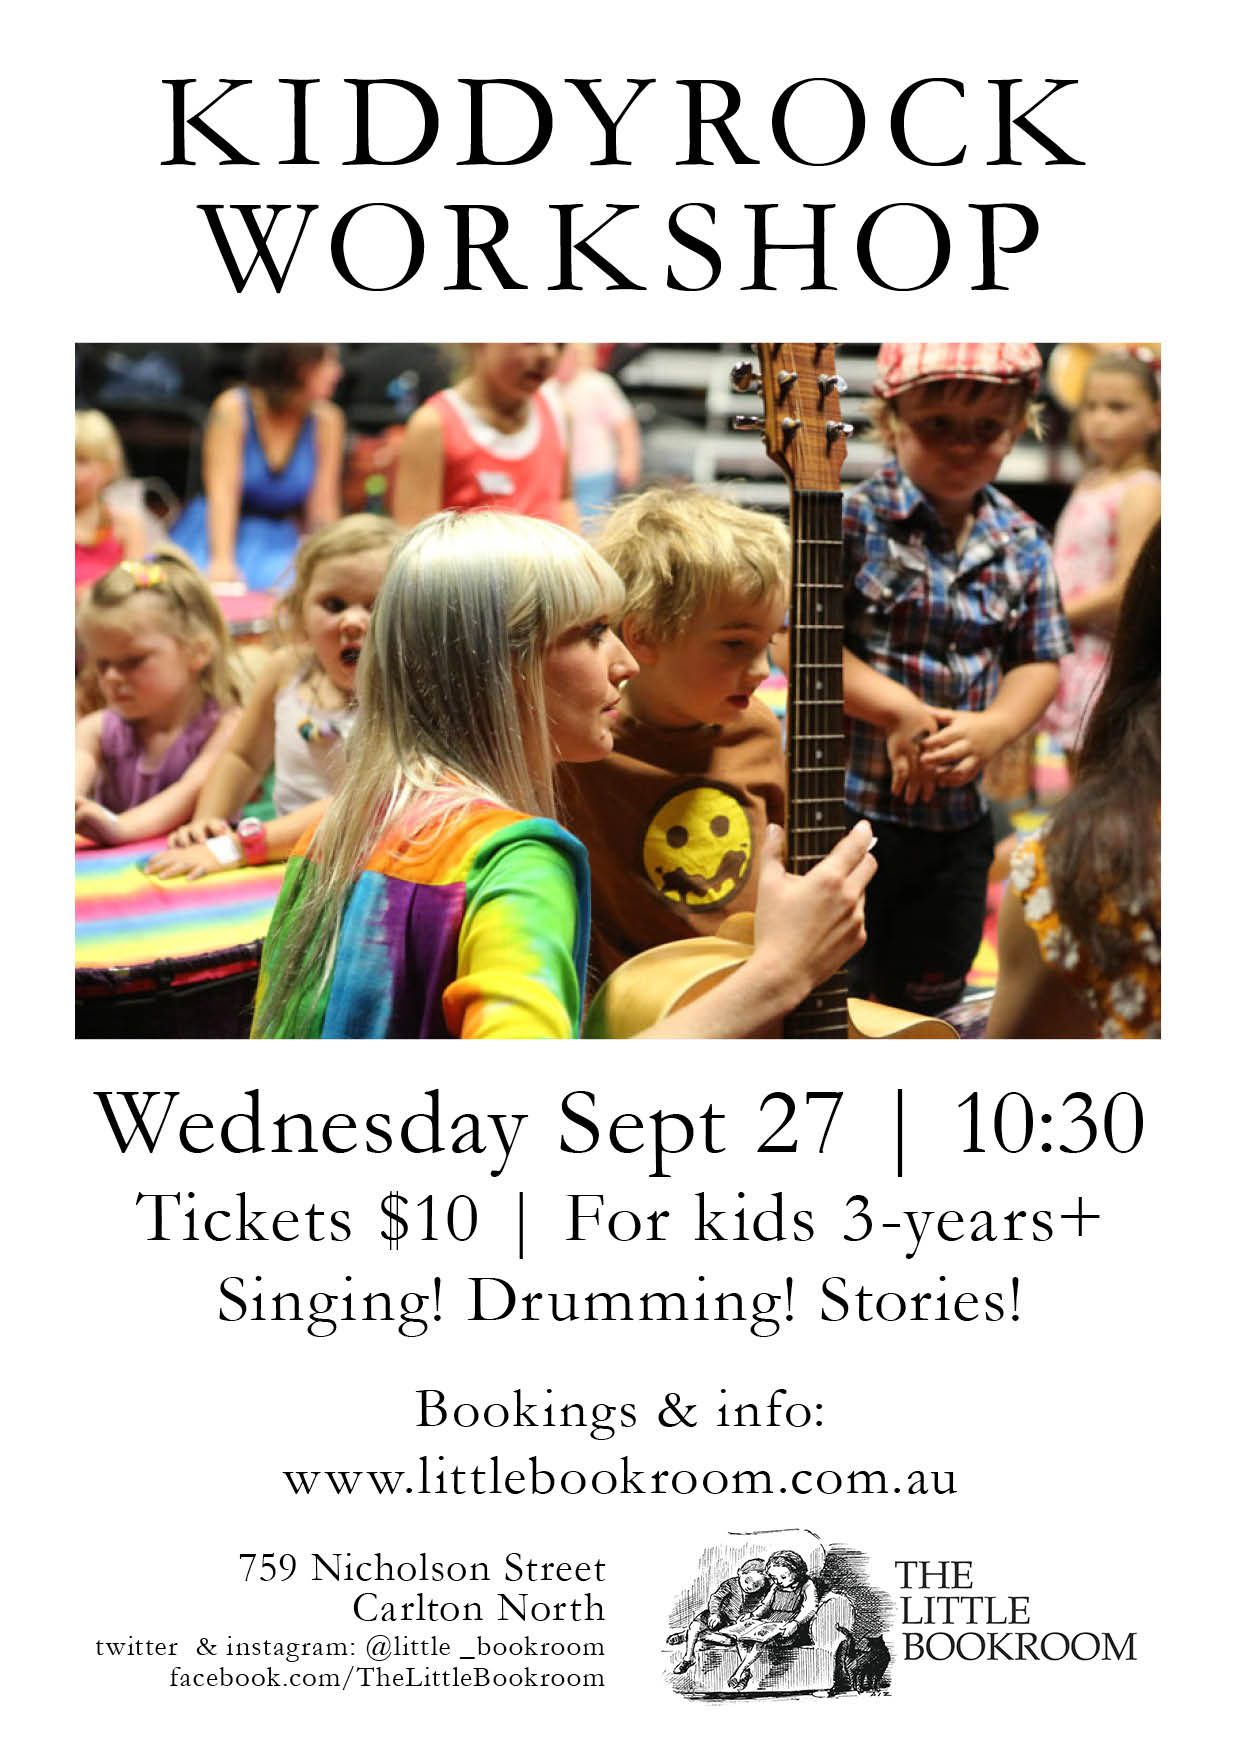 Kiddyrock Workshop at The Little Bookroom